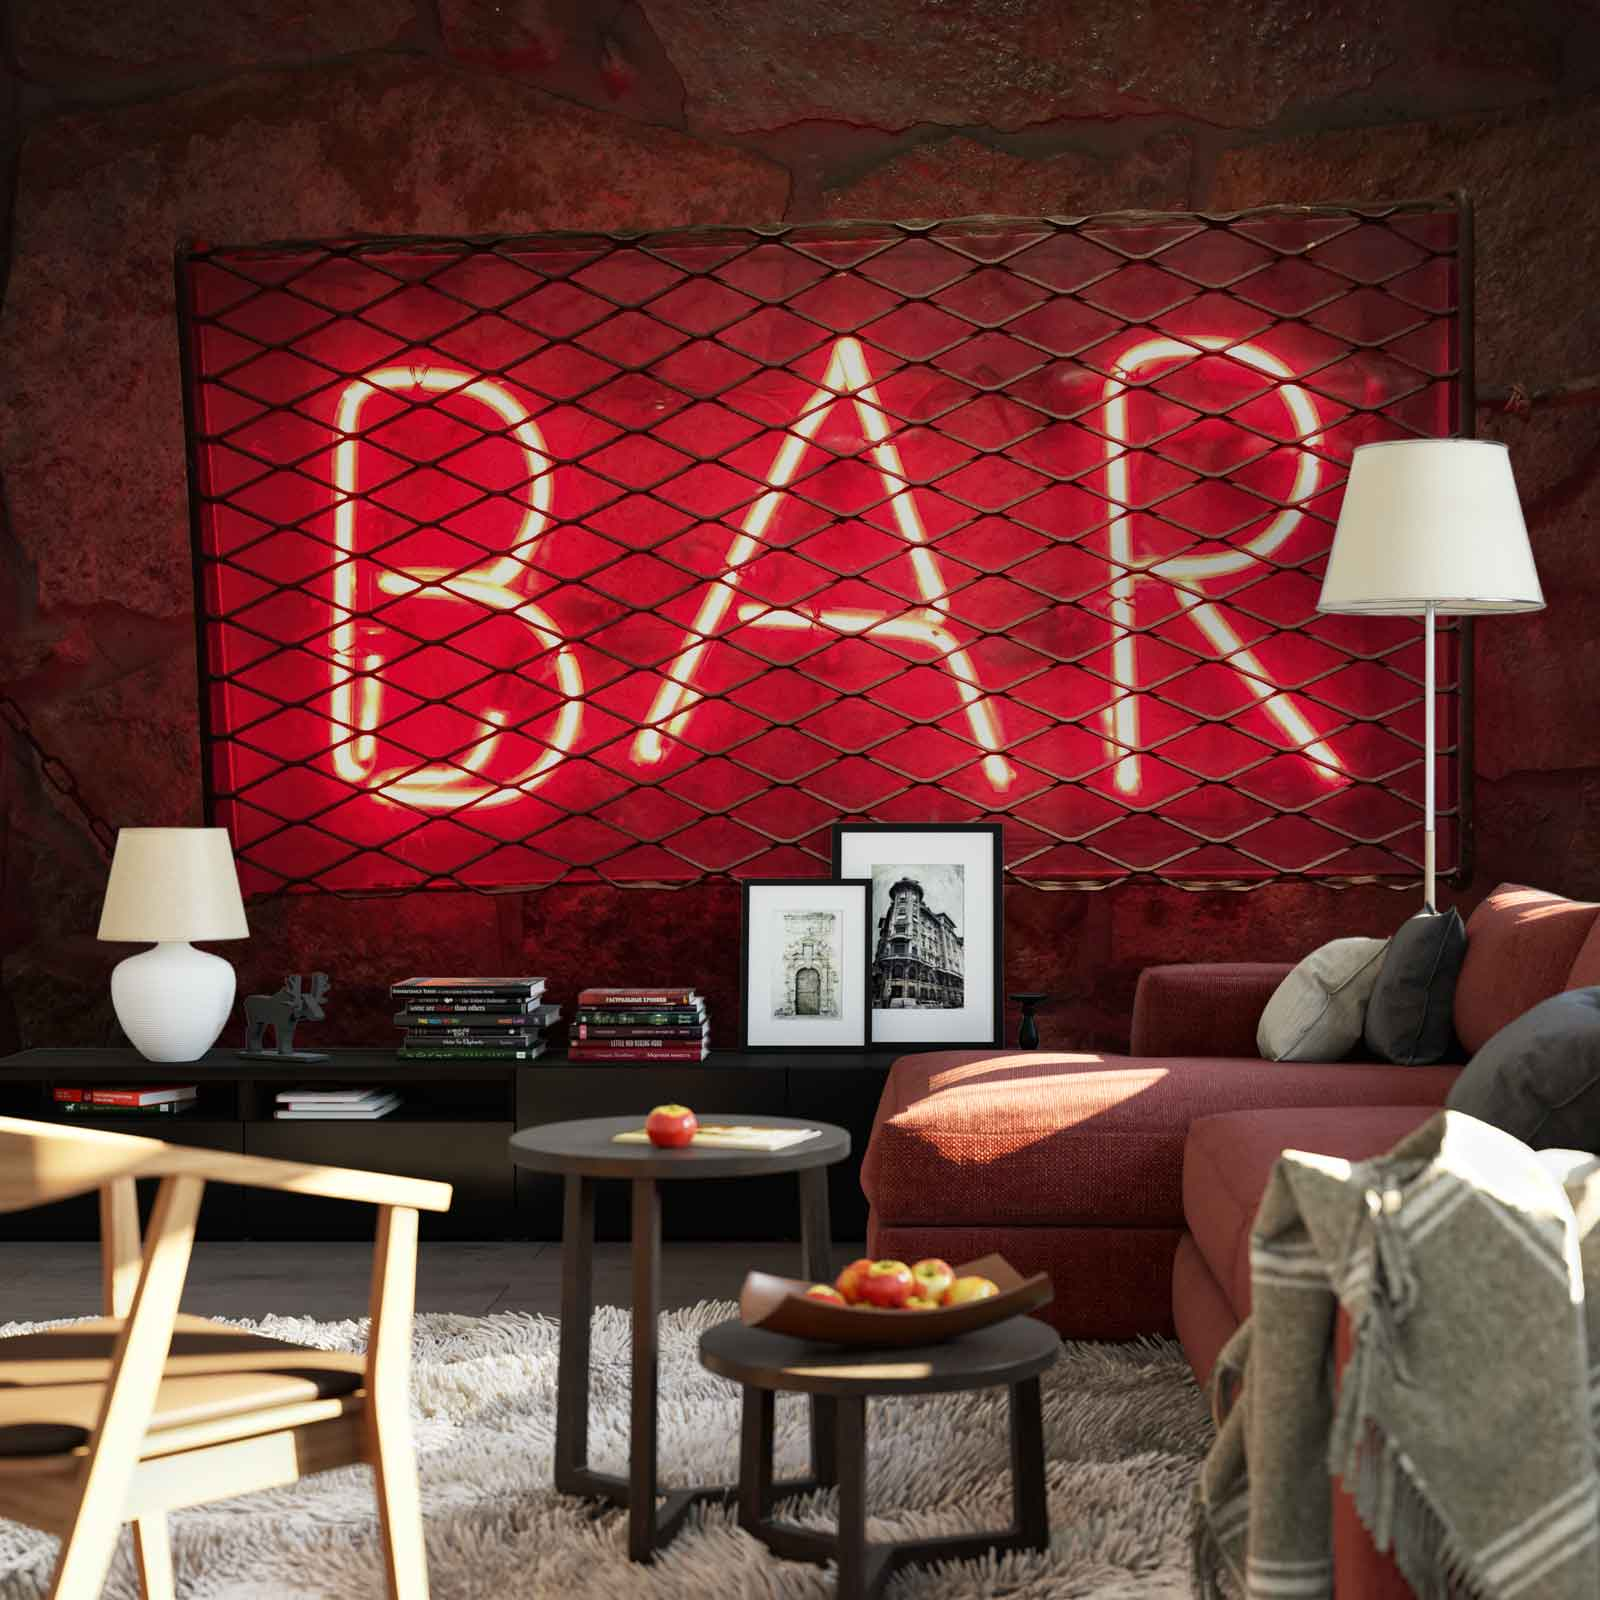 wall mural photo wallpaper xxl bar neon light sign grid grille jd 1219ws ebay. Black Bedroom Furniture Sets. Home Design Ideas